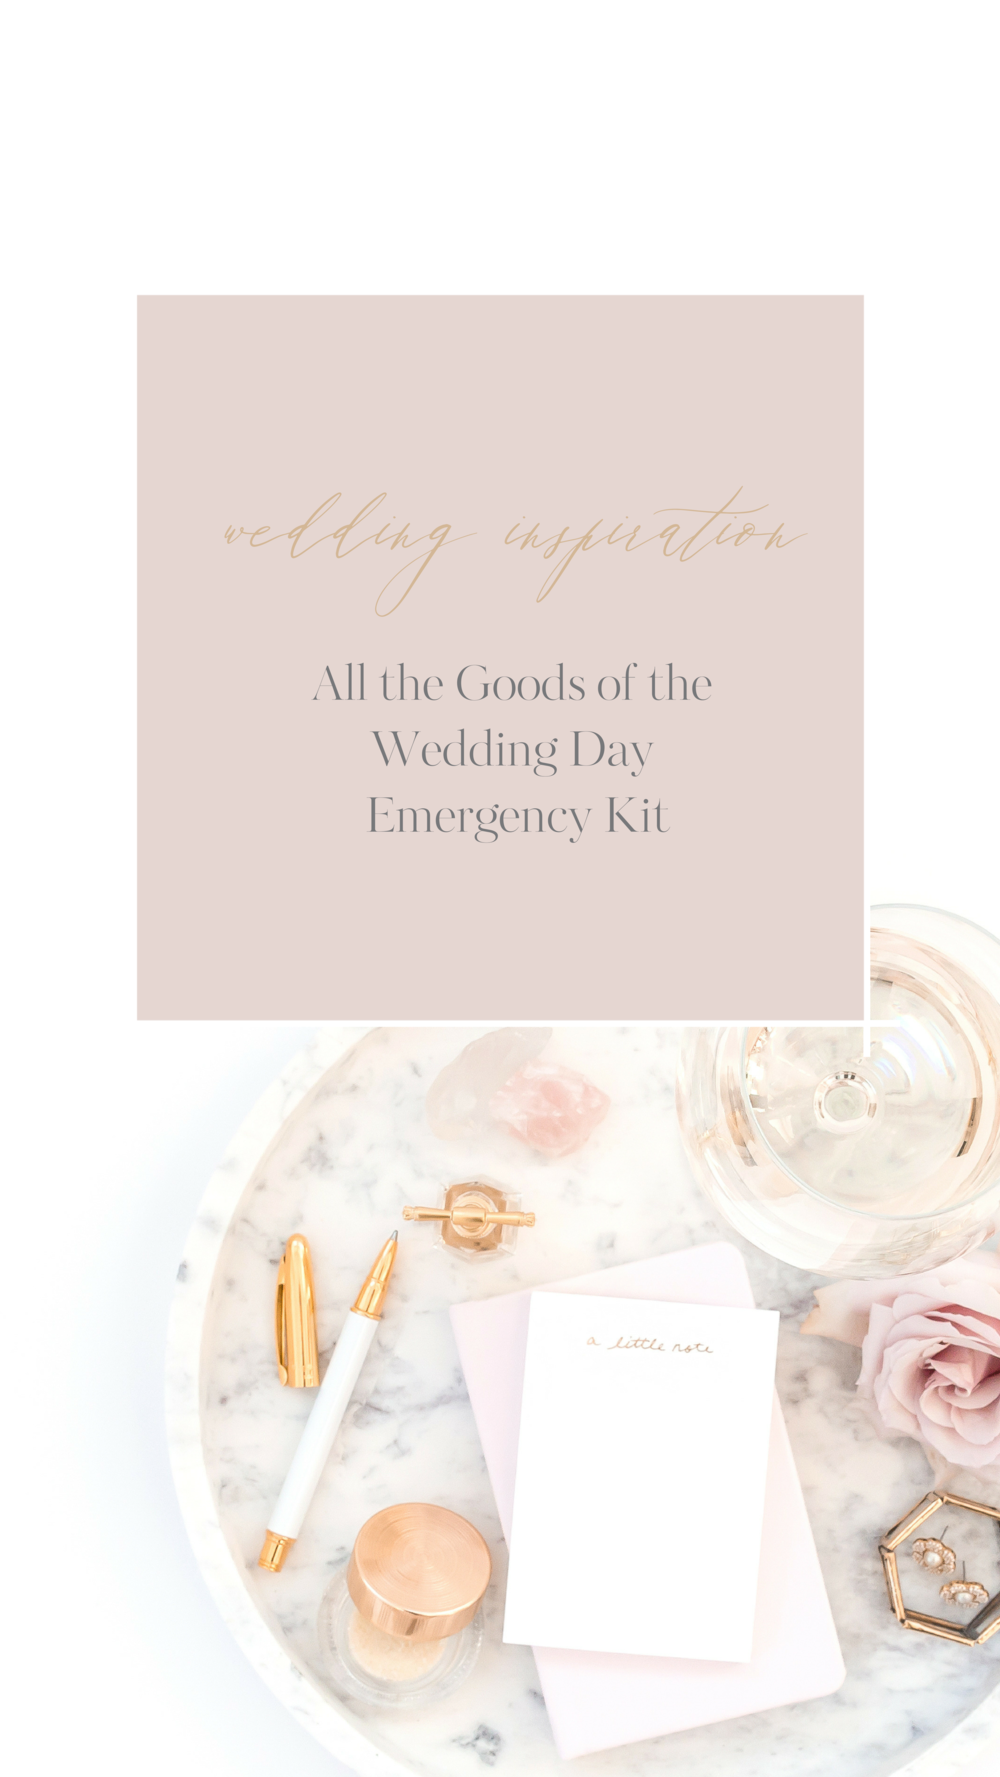 Wedding Day Emergency Kit.png